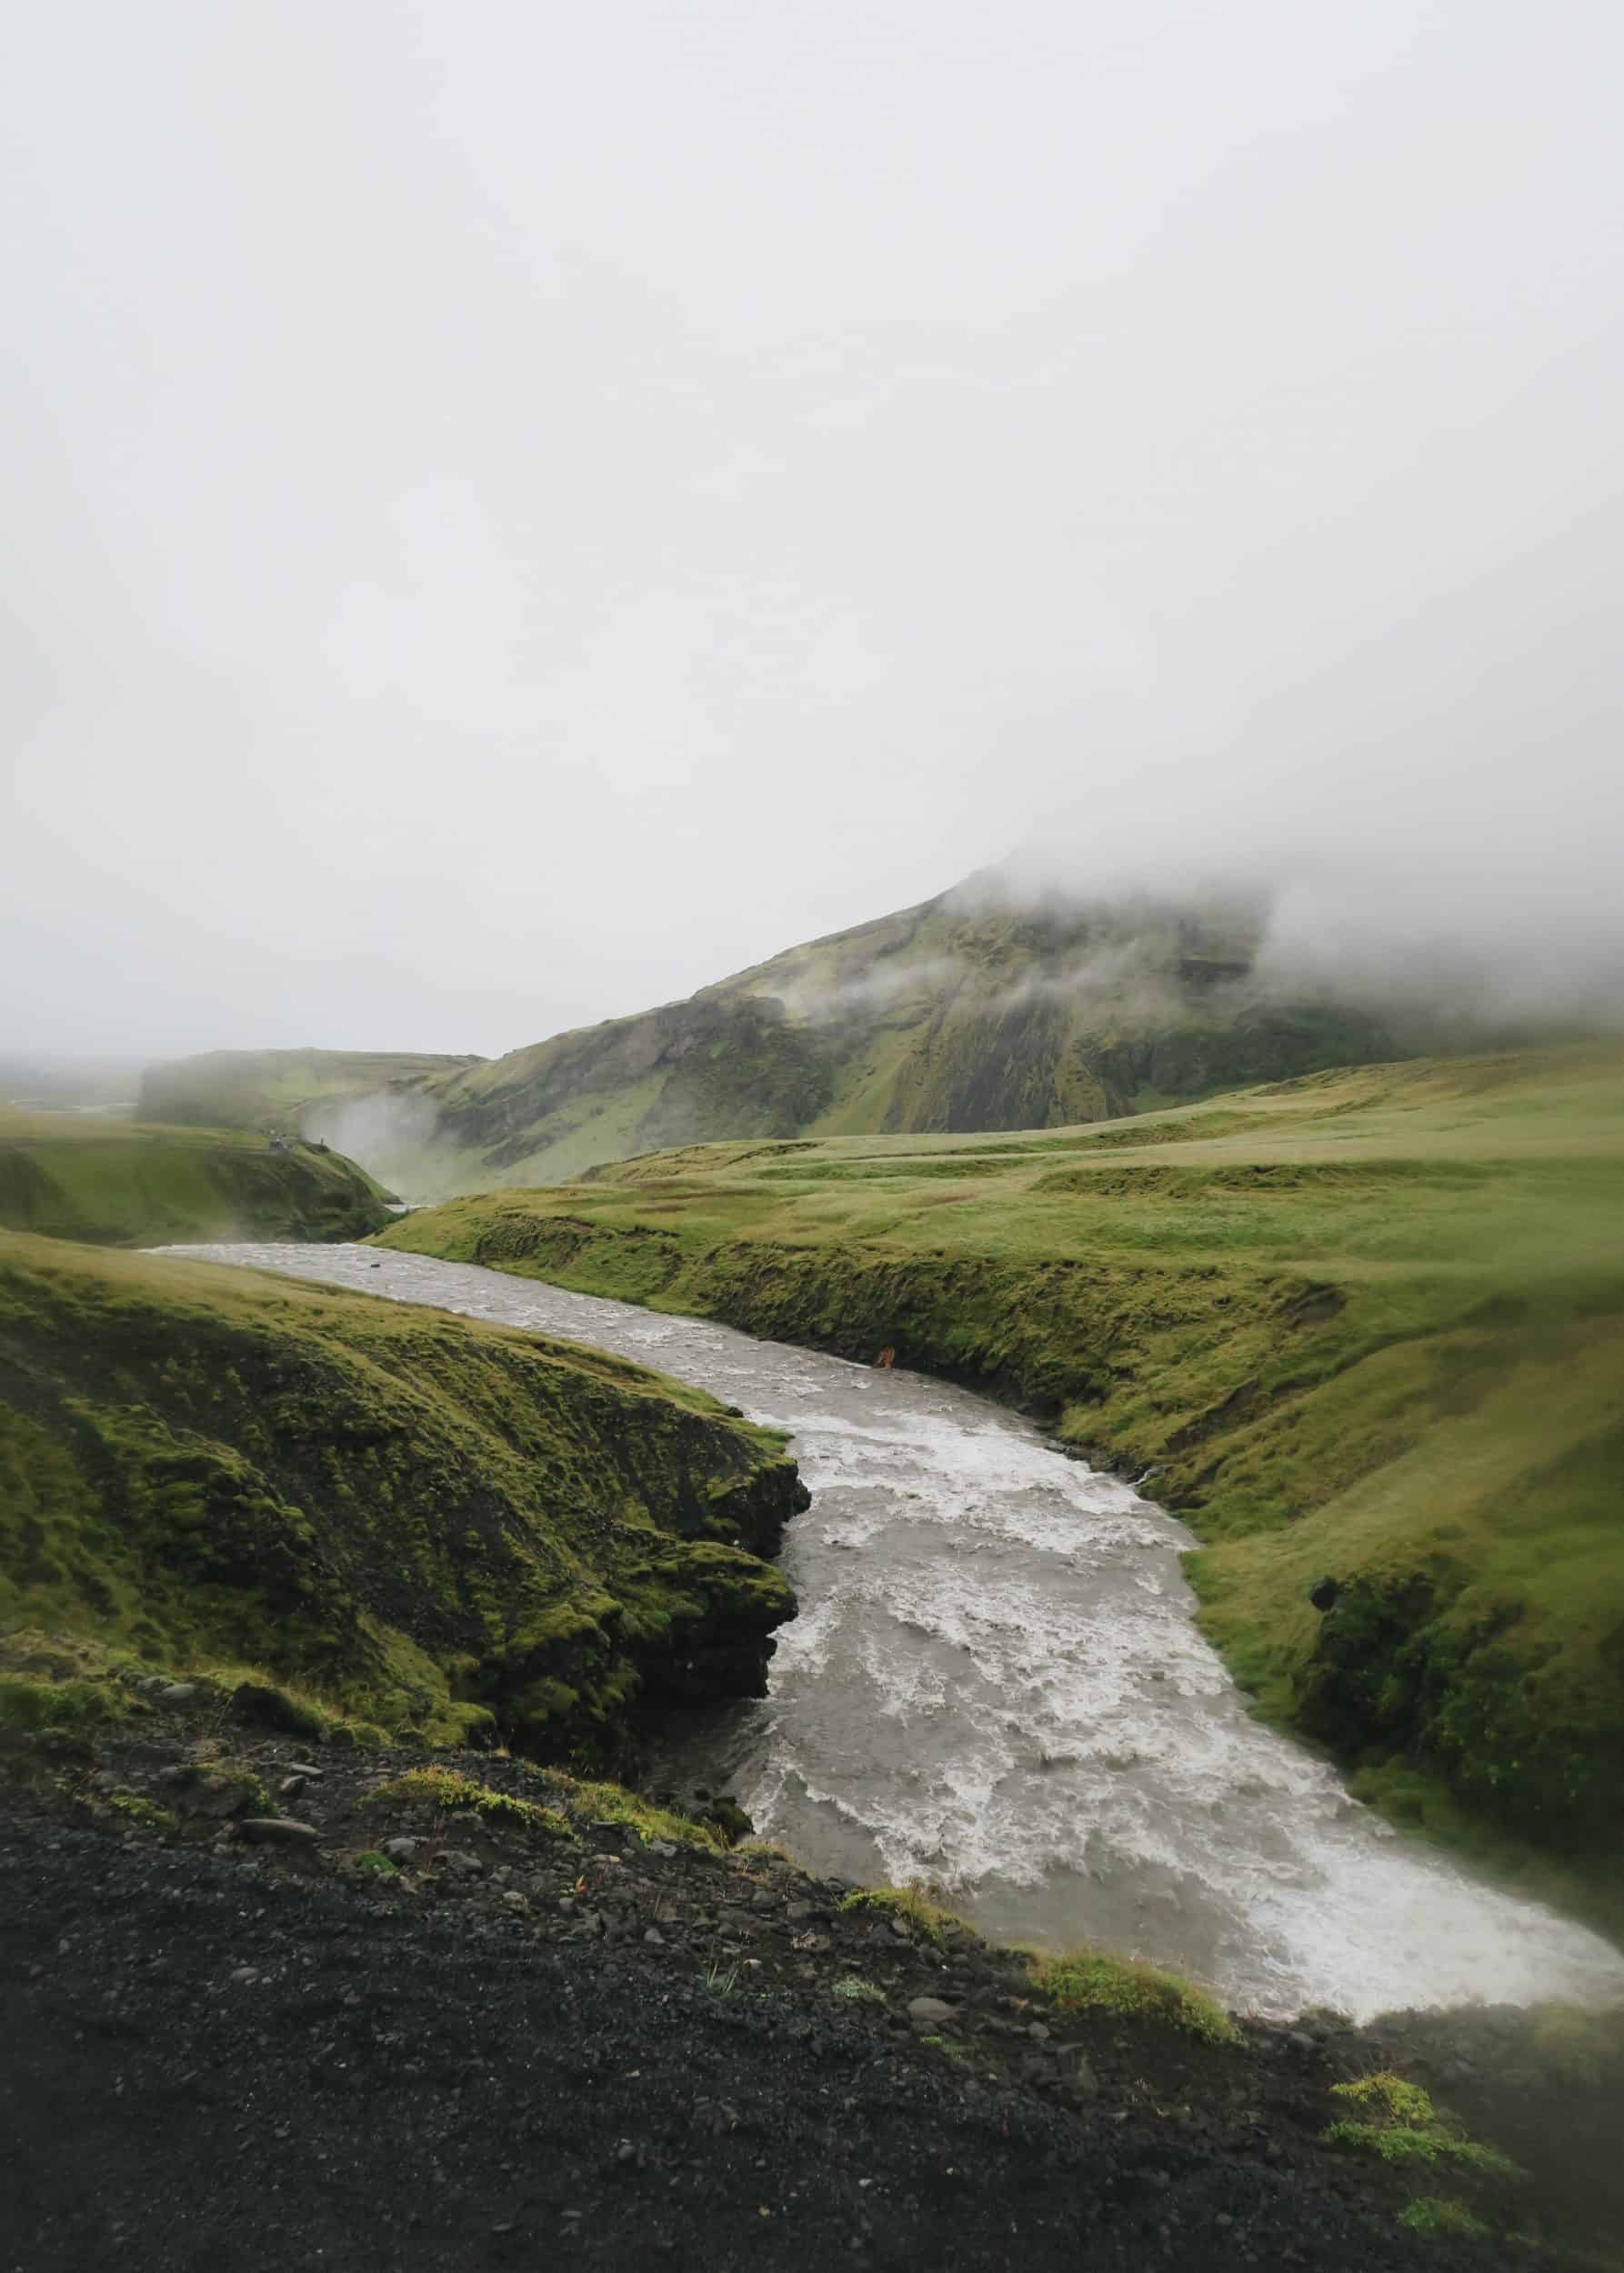 Hiking along the Skogafoss Waterfall Trail | Diary of a Toronto Girl, a Canadian lifestyle blog